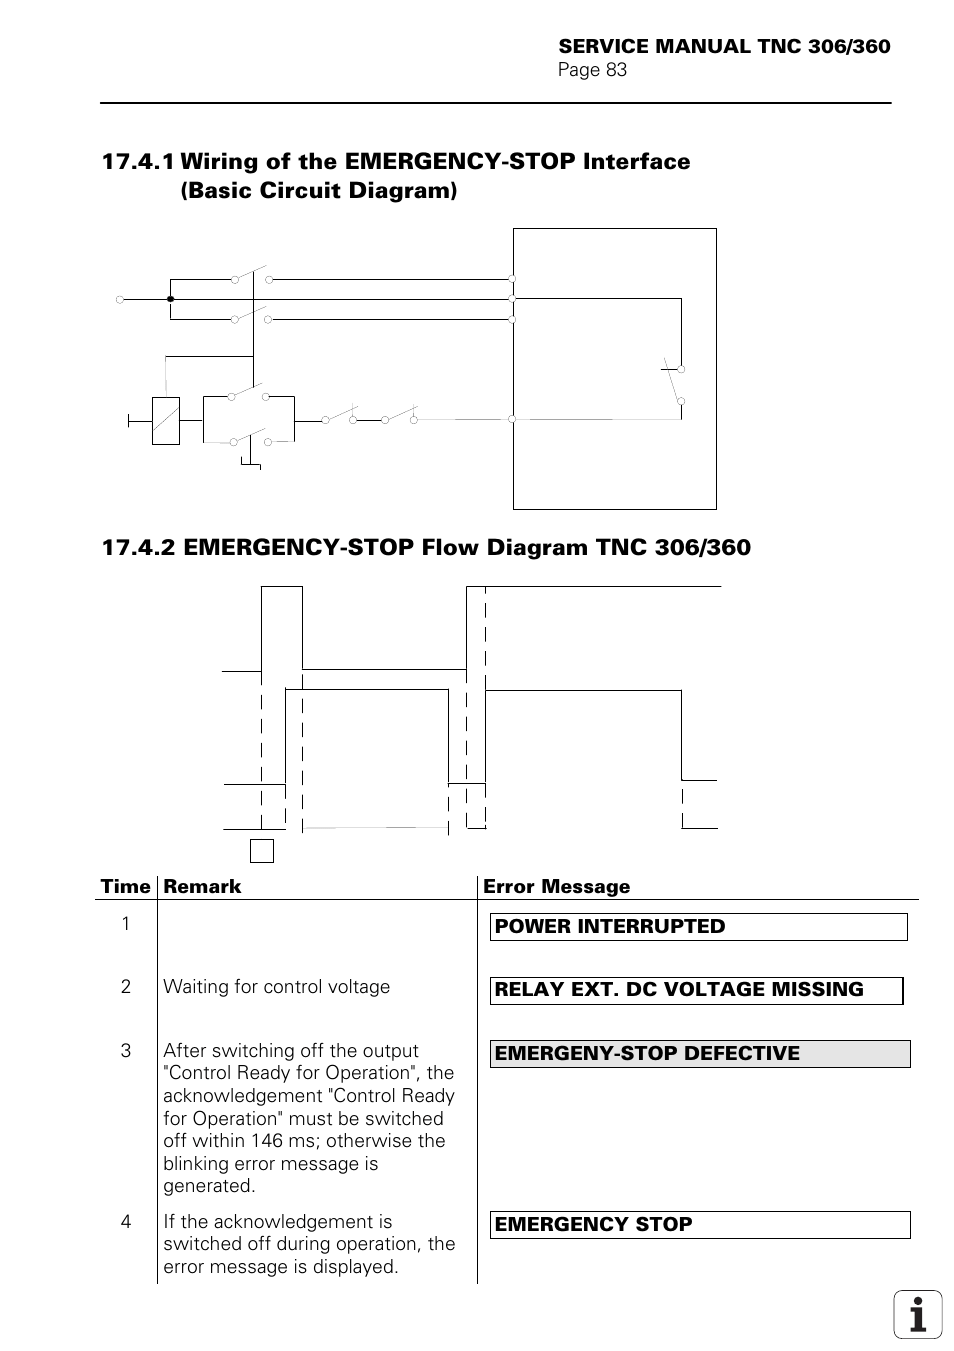 hight resolution of emergency stop relay ext dc voltage missing heidenhain tnc 306 service manual user manual page 90 157